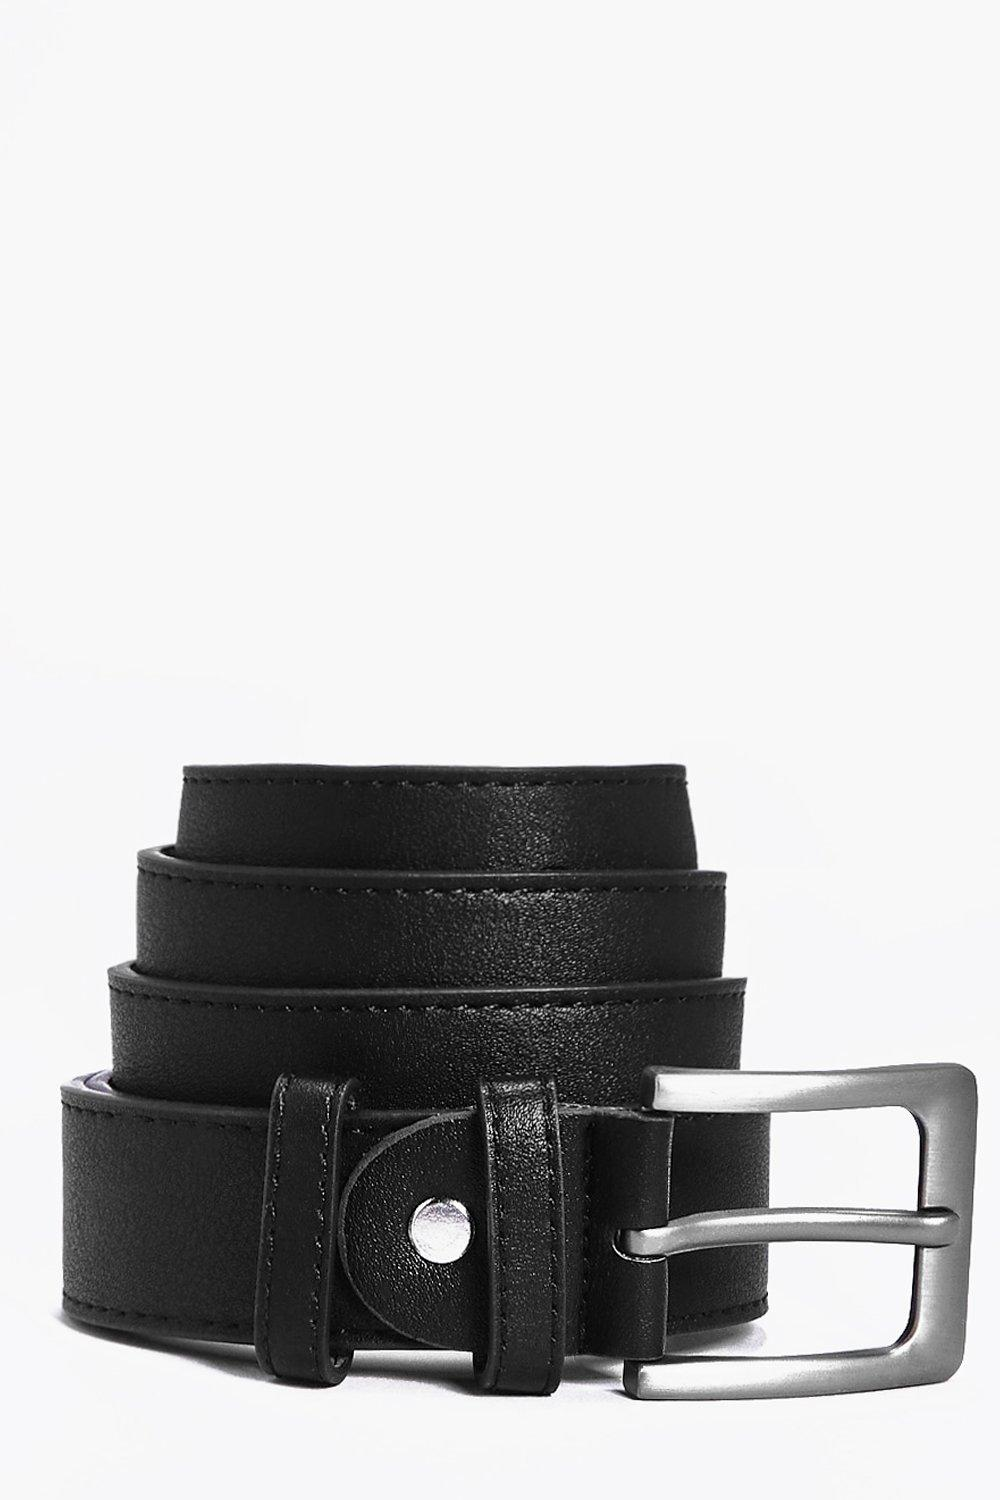 Buckle Smart PU Belt - black - Metal Buckle Smart